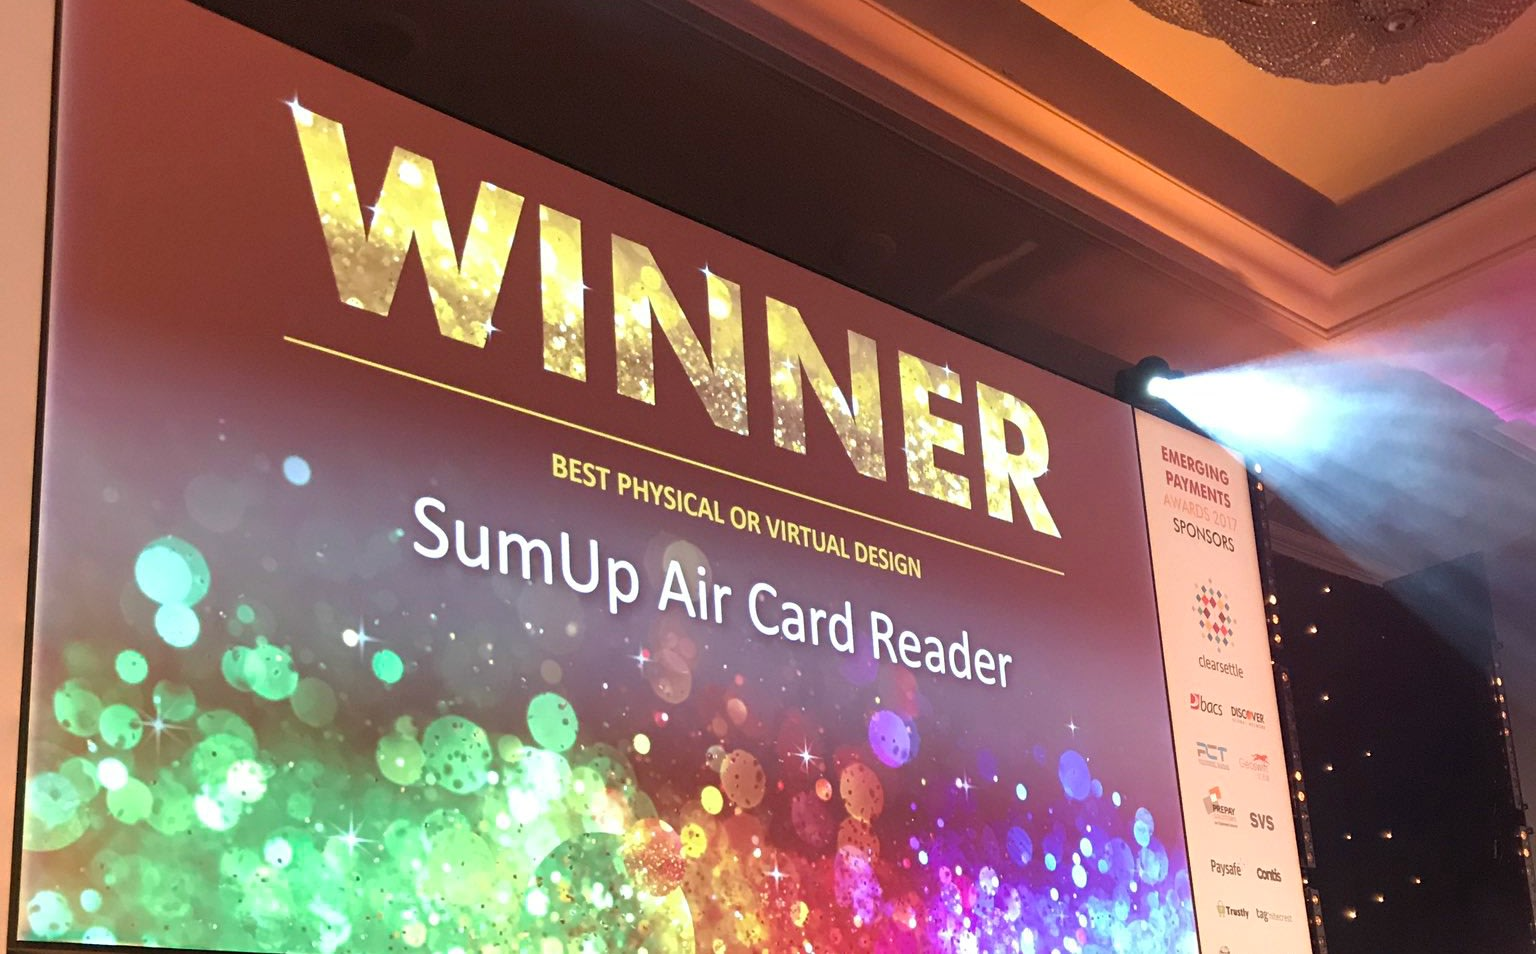 SumUp - Winner of Emerging Payments Award 2017